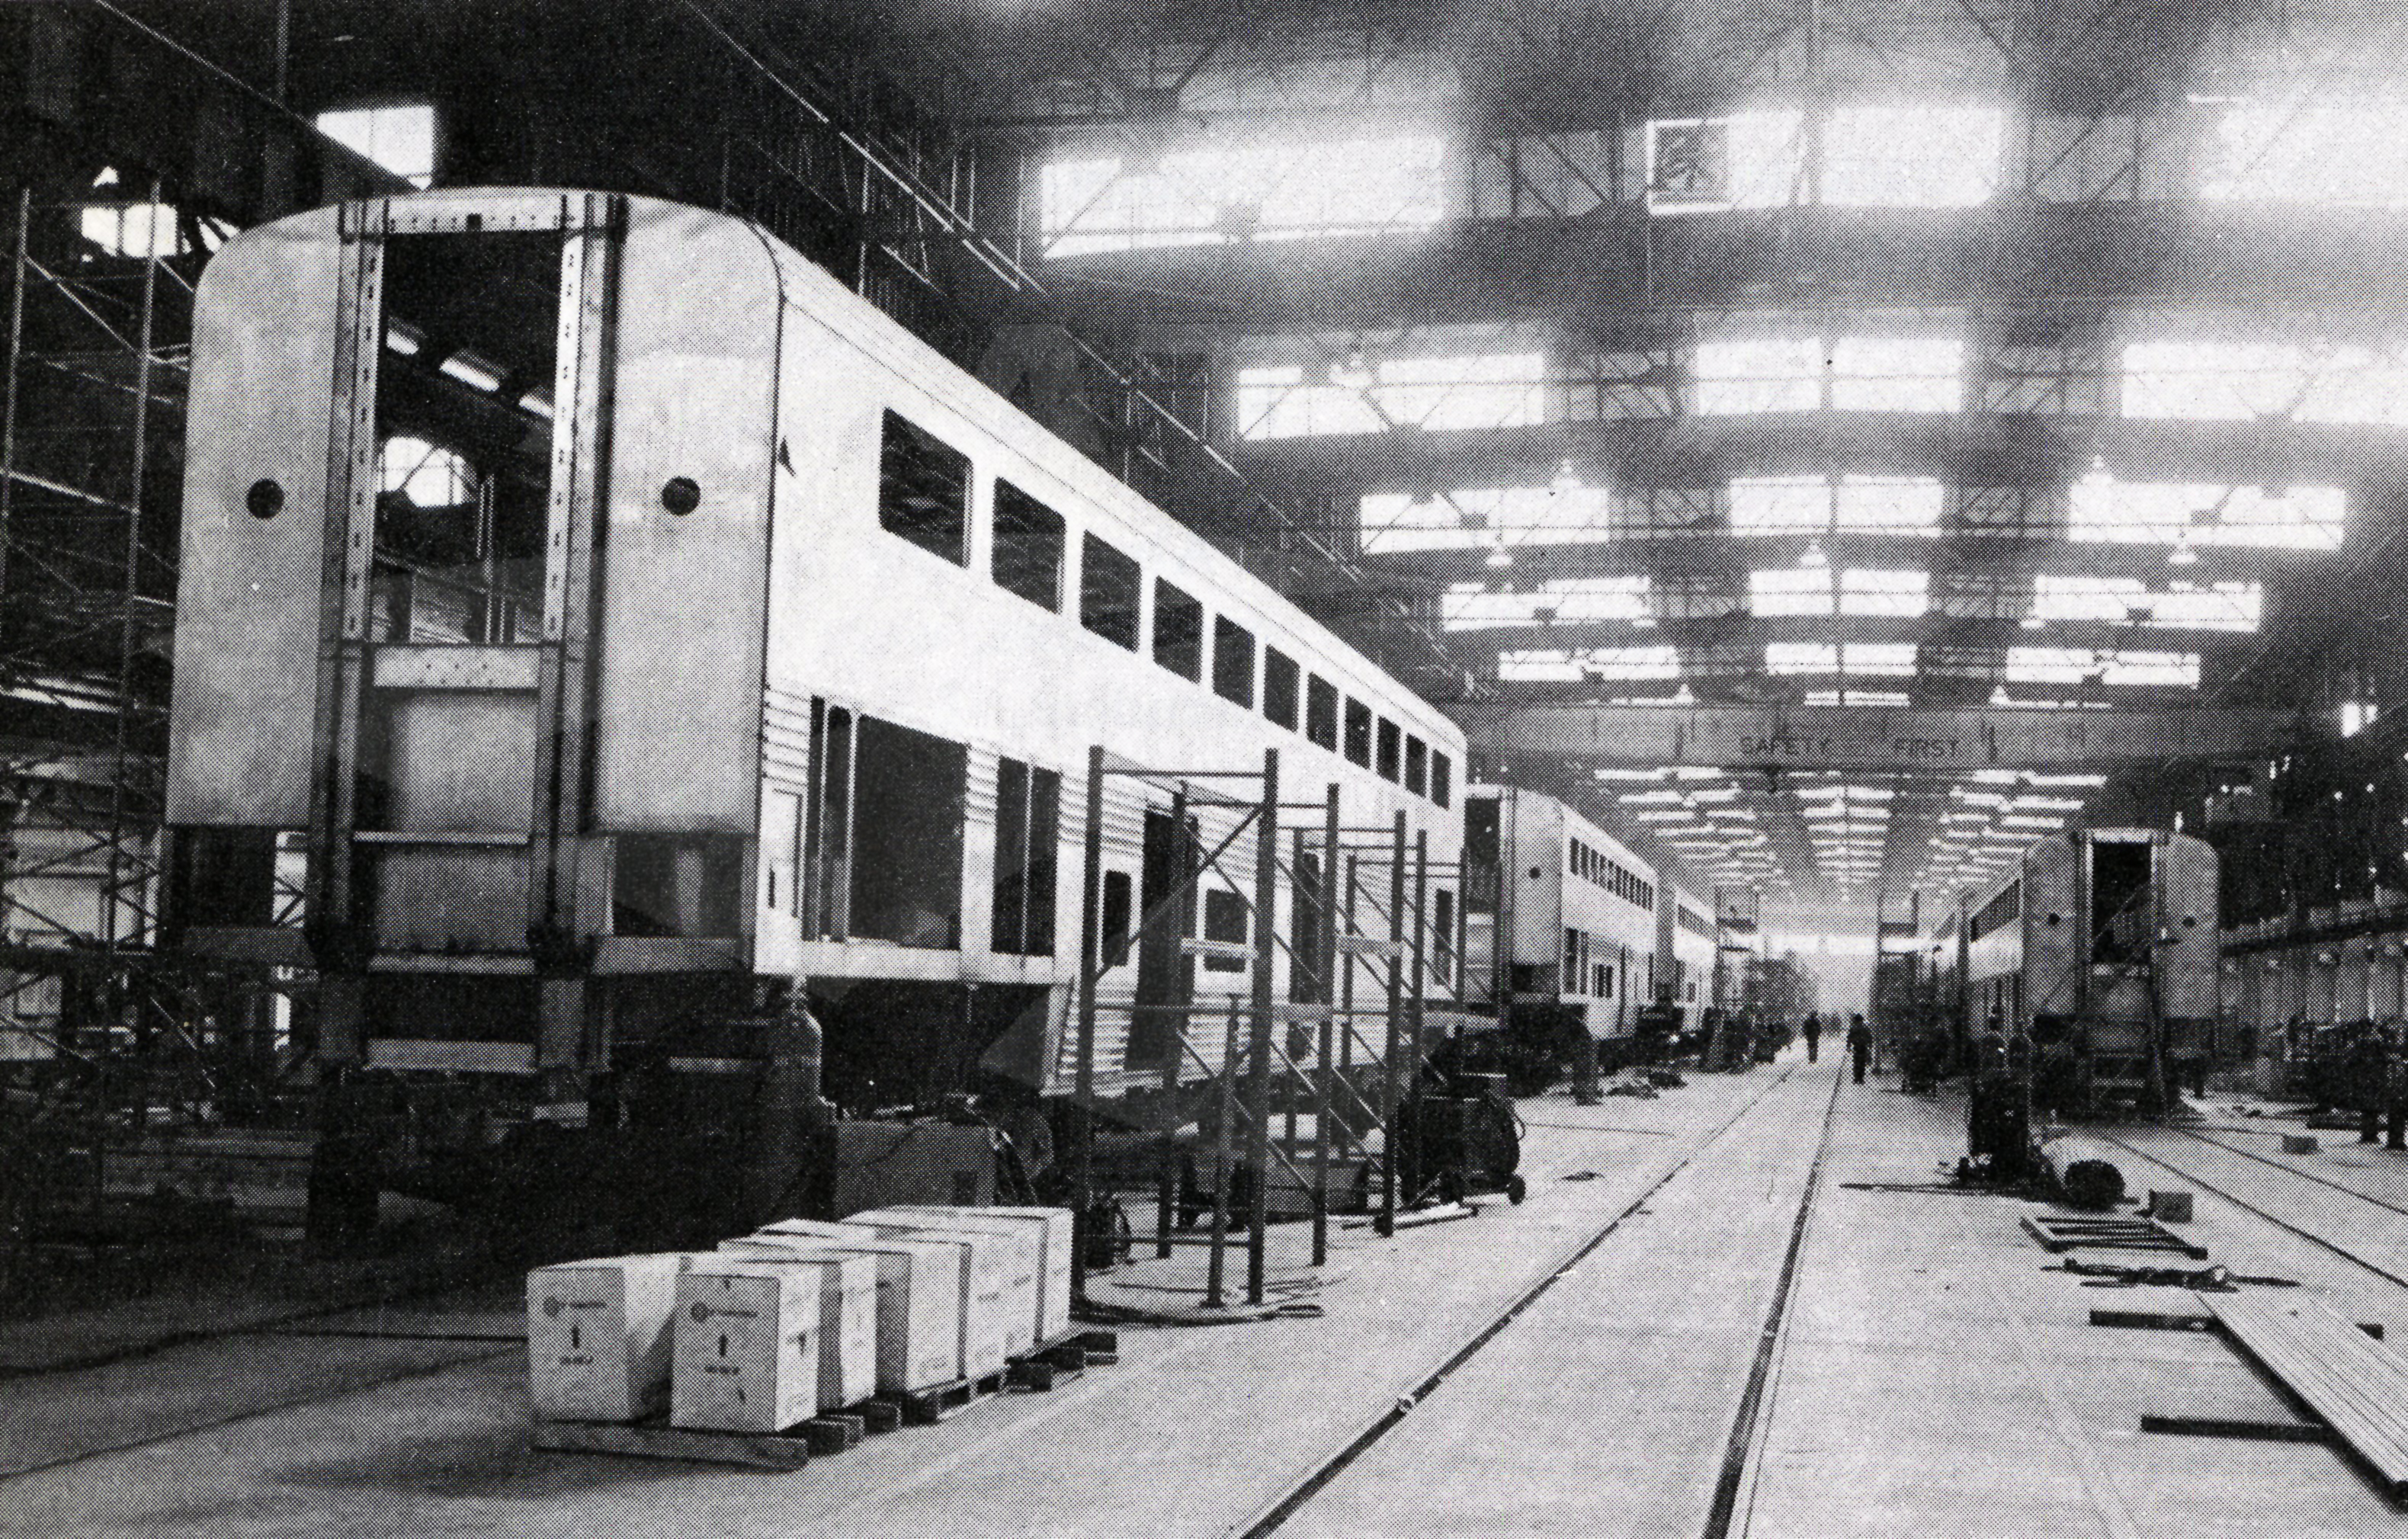 Superliner assembly at the Pullman Standard plant, 1977